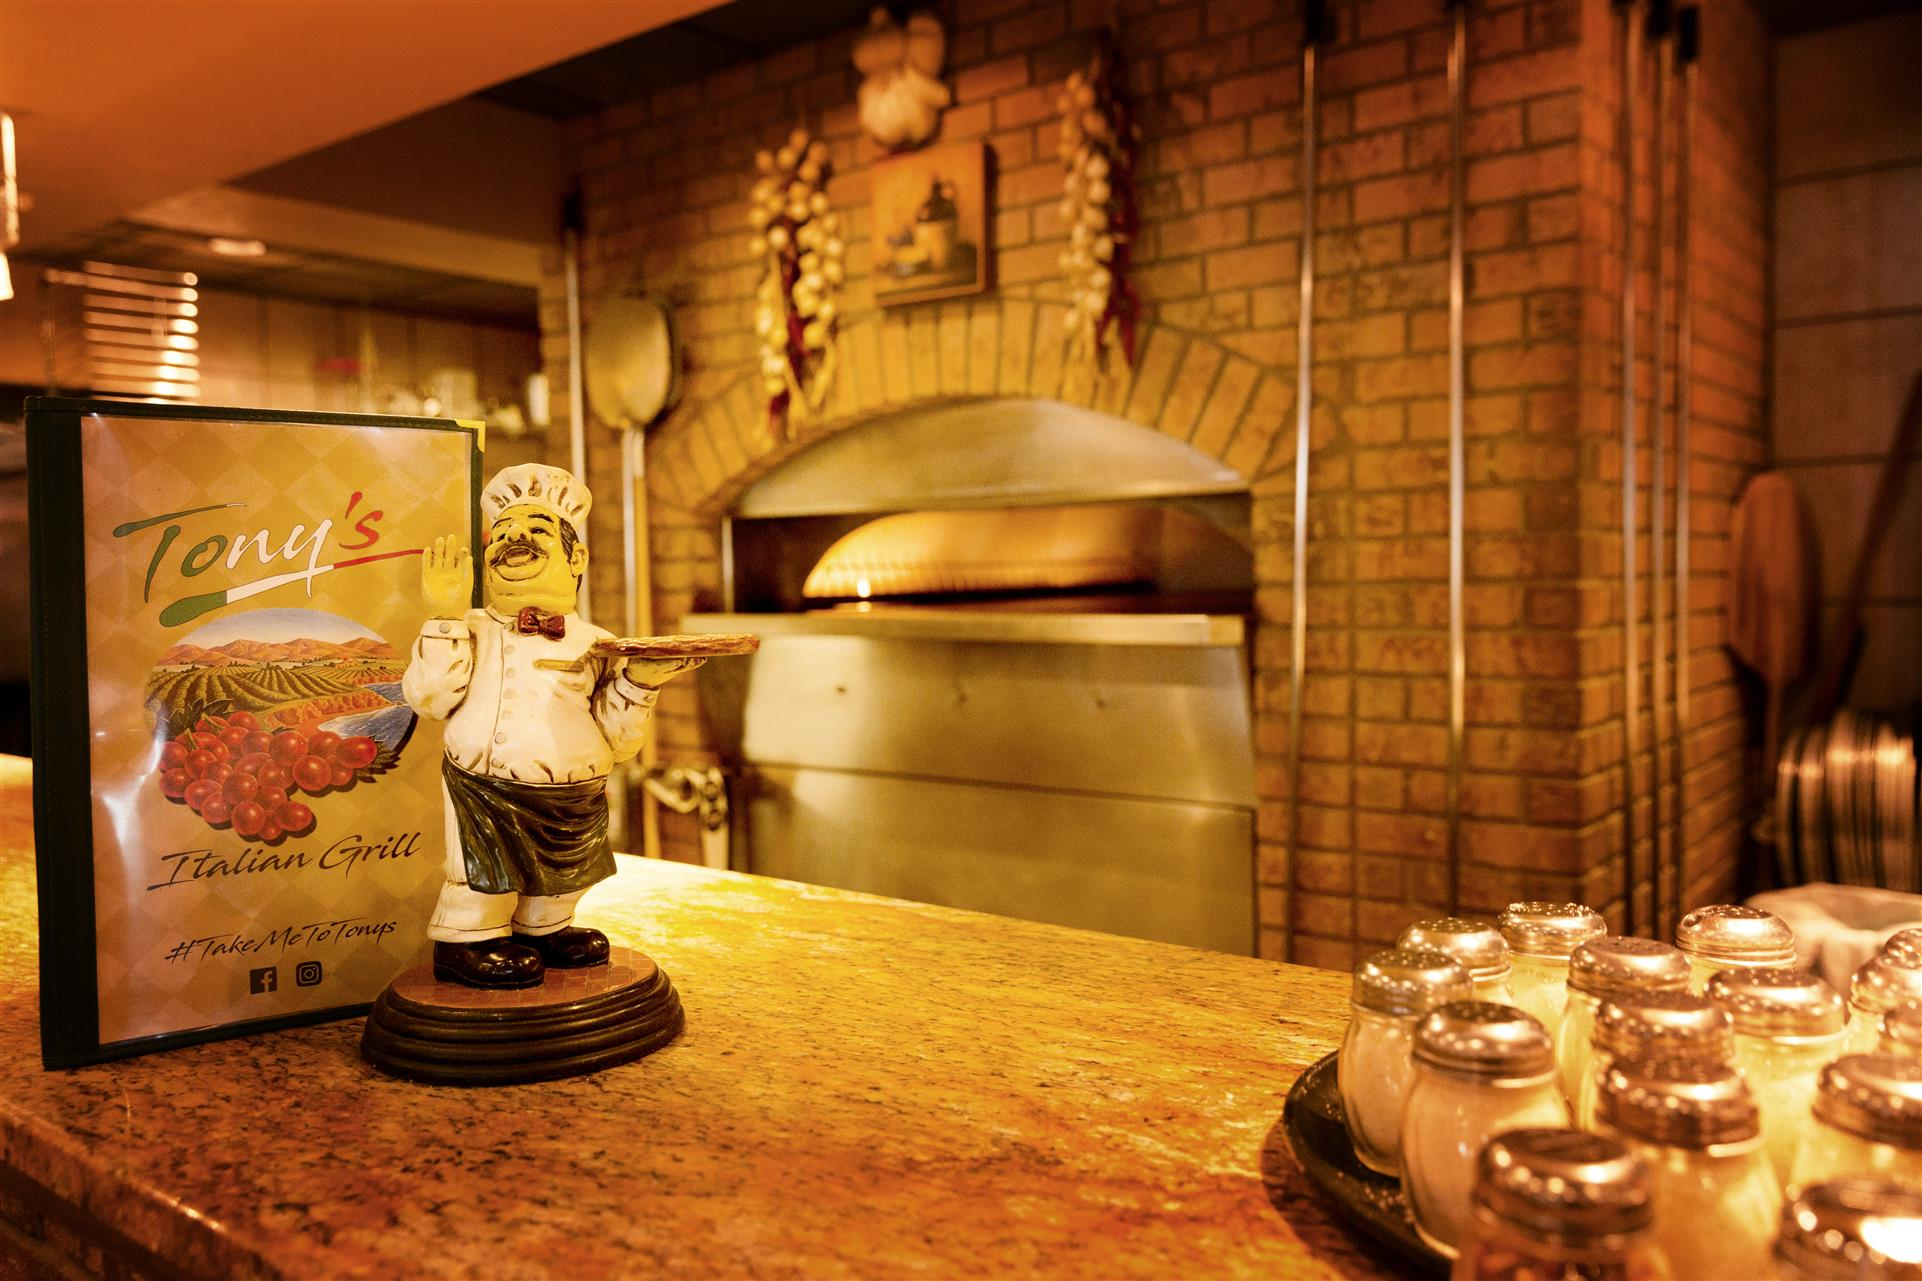 Behind the counter view of the Brick Oven